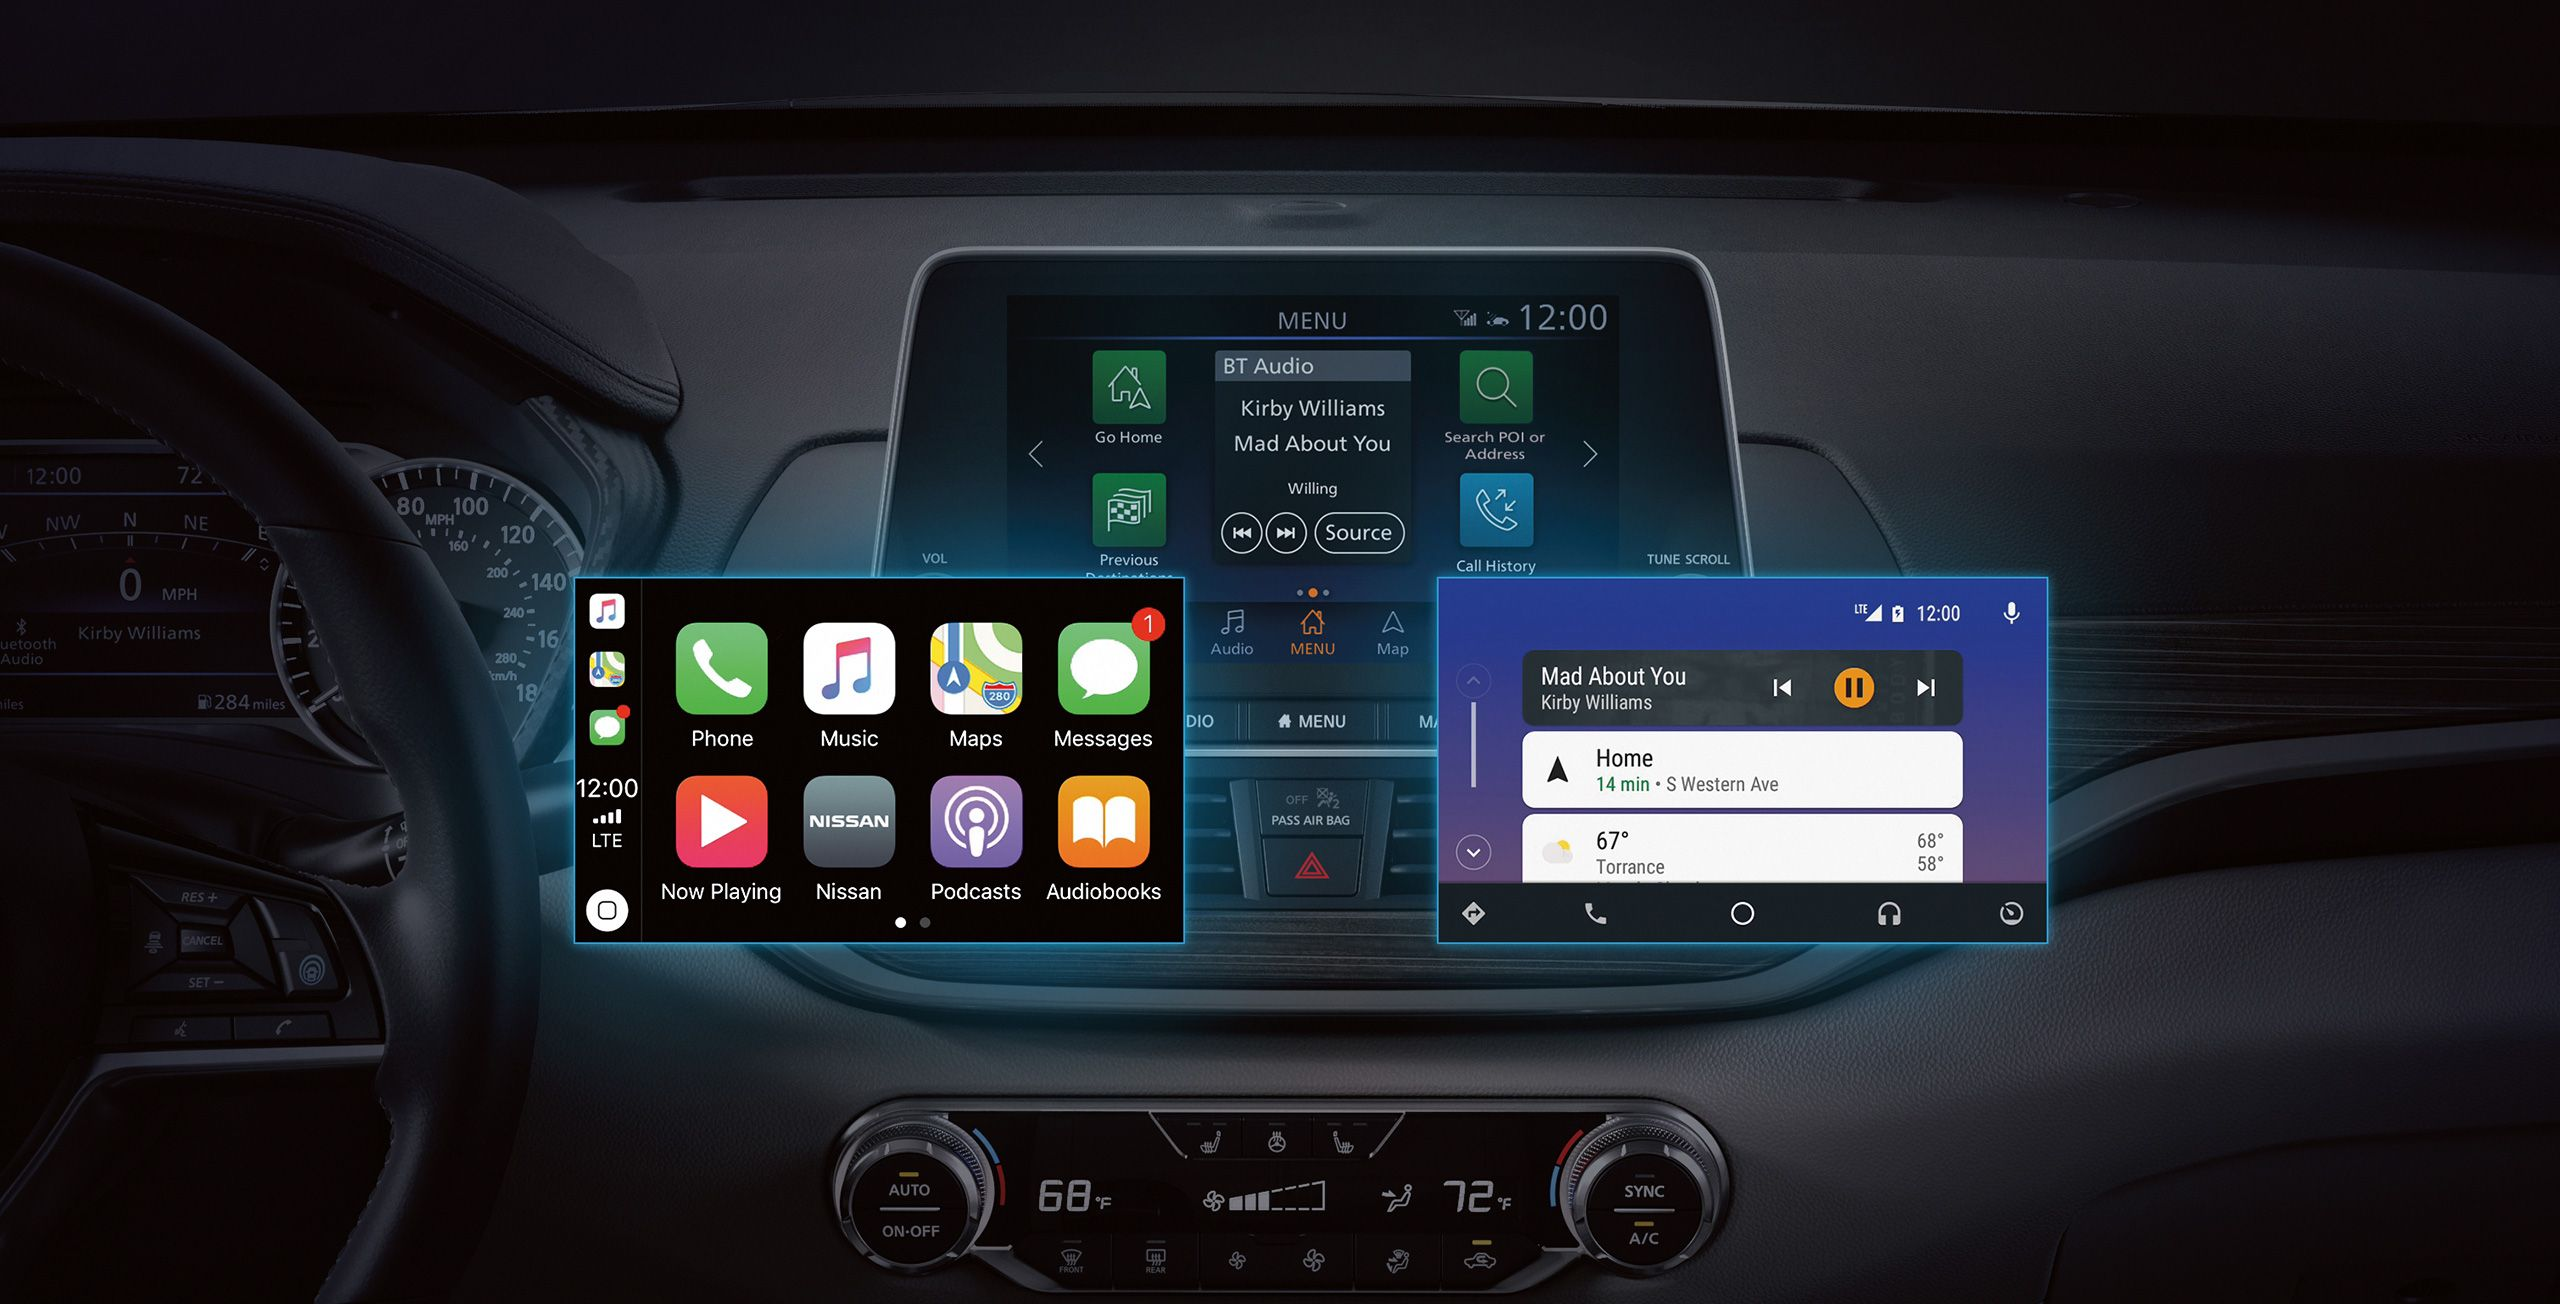 Nissan Connect with Apple CarPlay and Android Auto